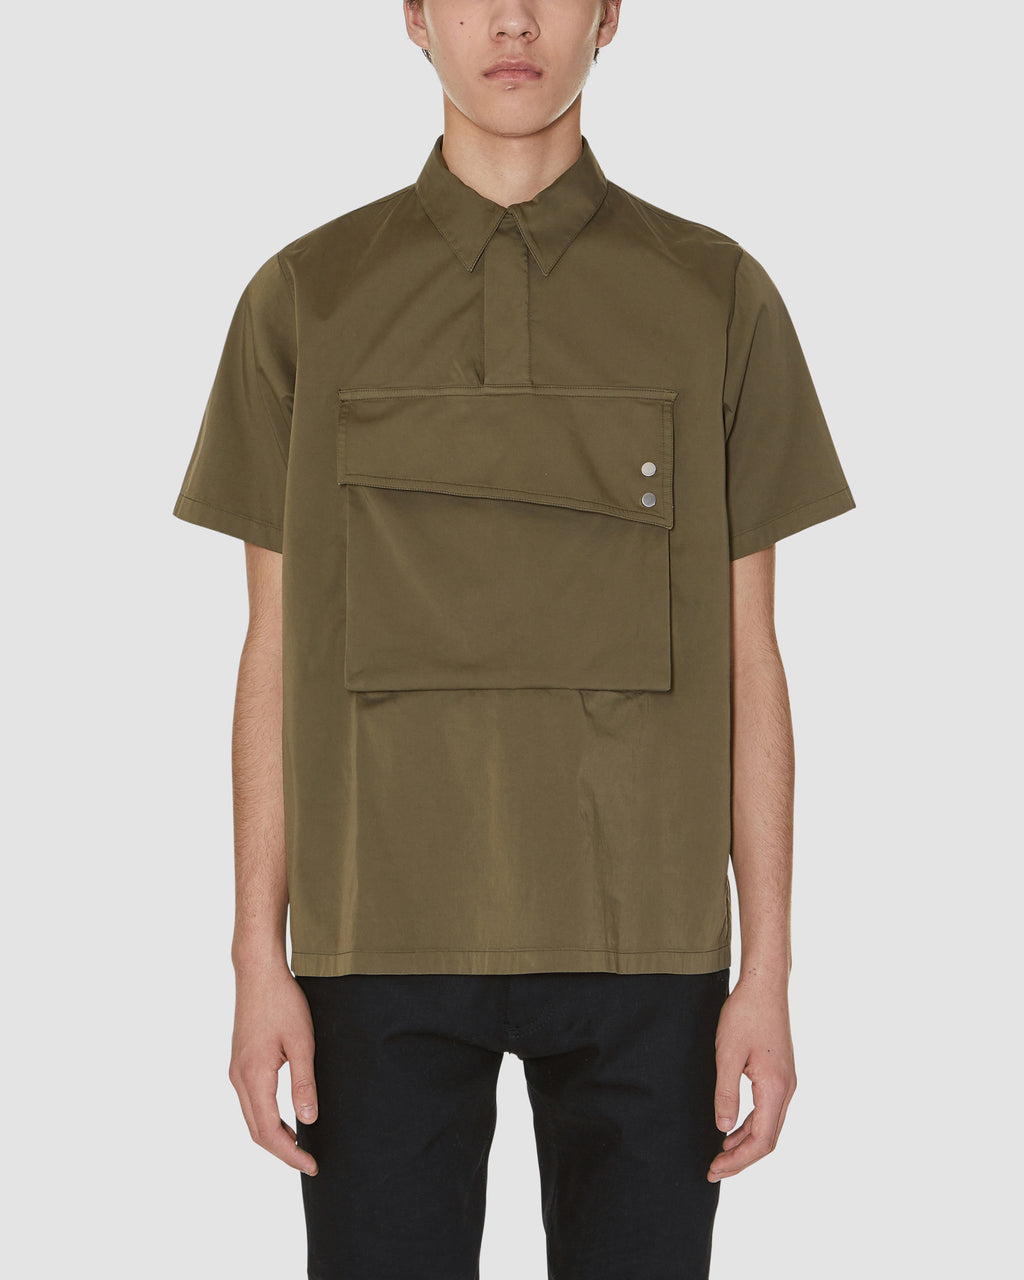 SCOUT SHORT SLEEVE SHIRT - Pre Order